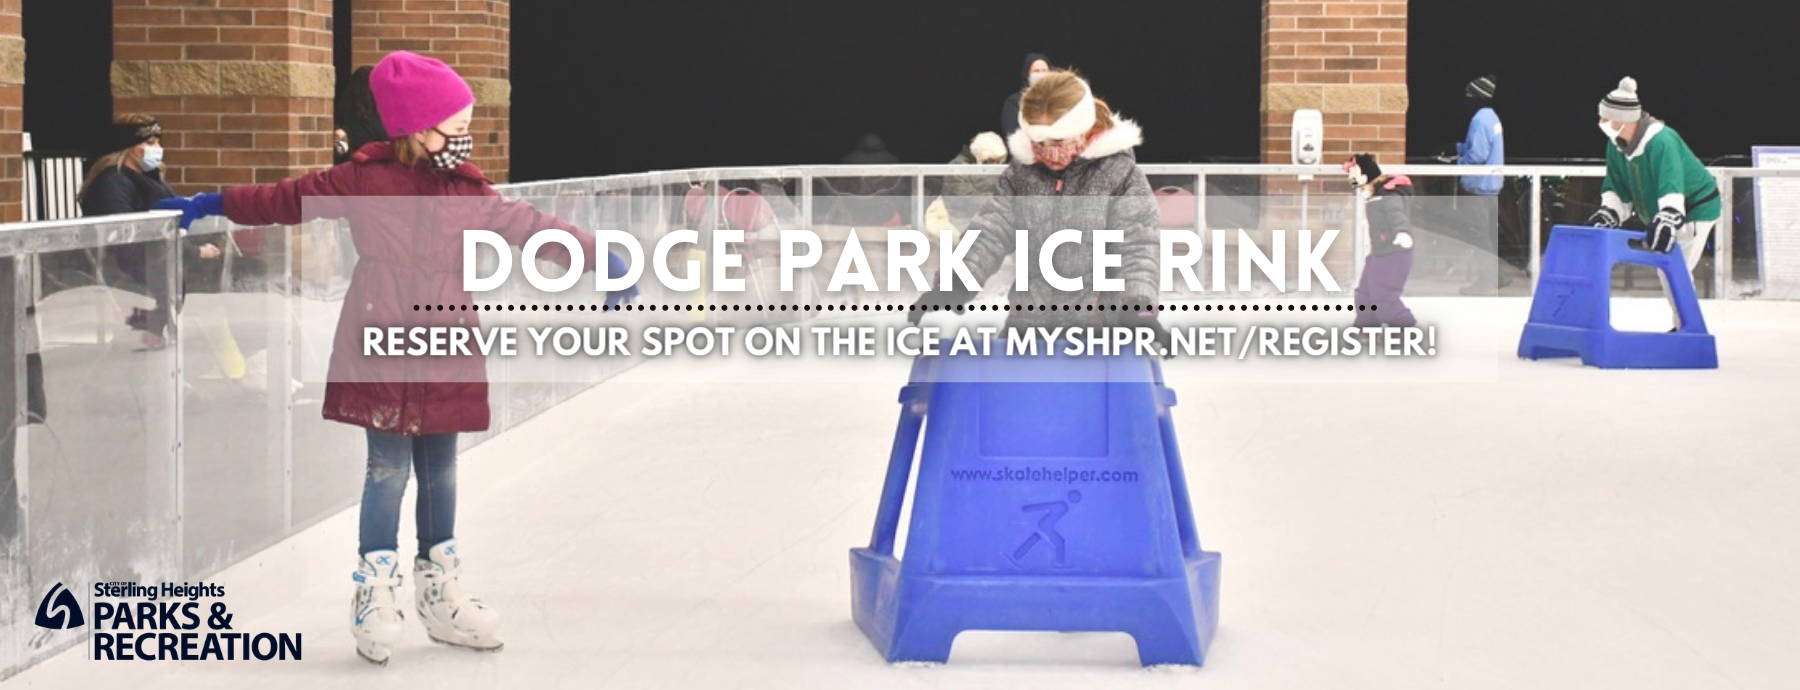 Ice Rink Website Page